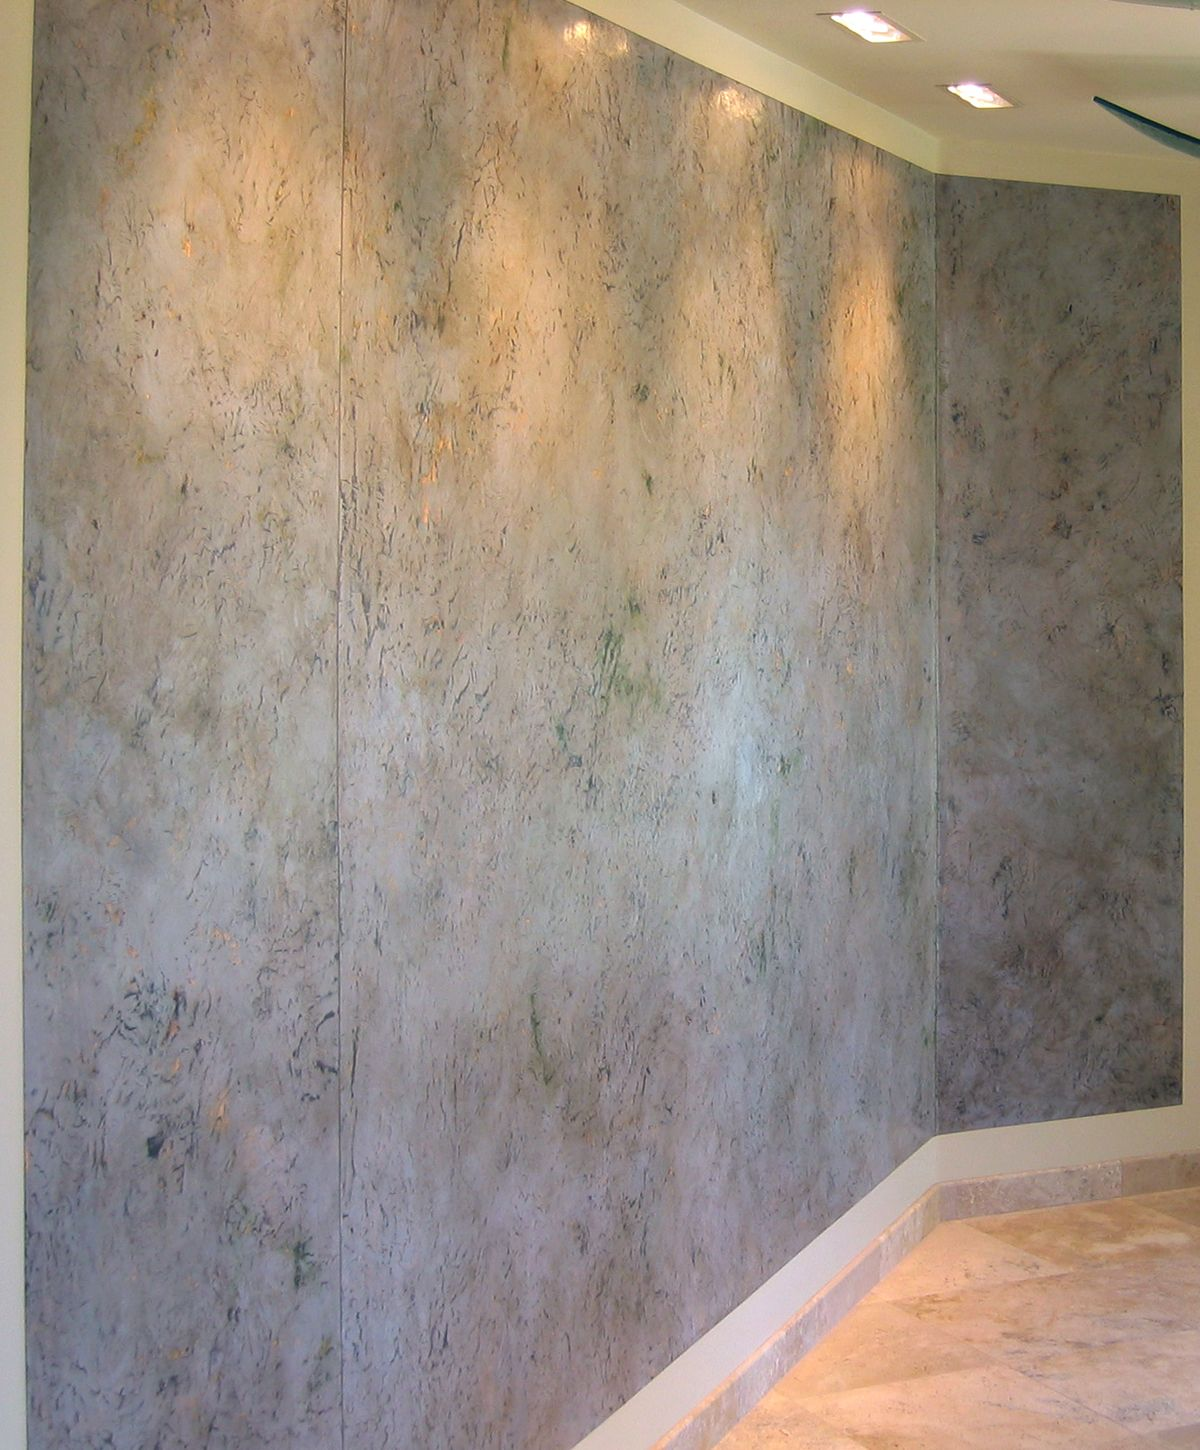 Polished venetian plaster wall finishjohn hiemstra How to finish a concrete wall